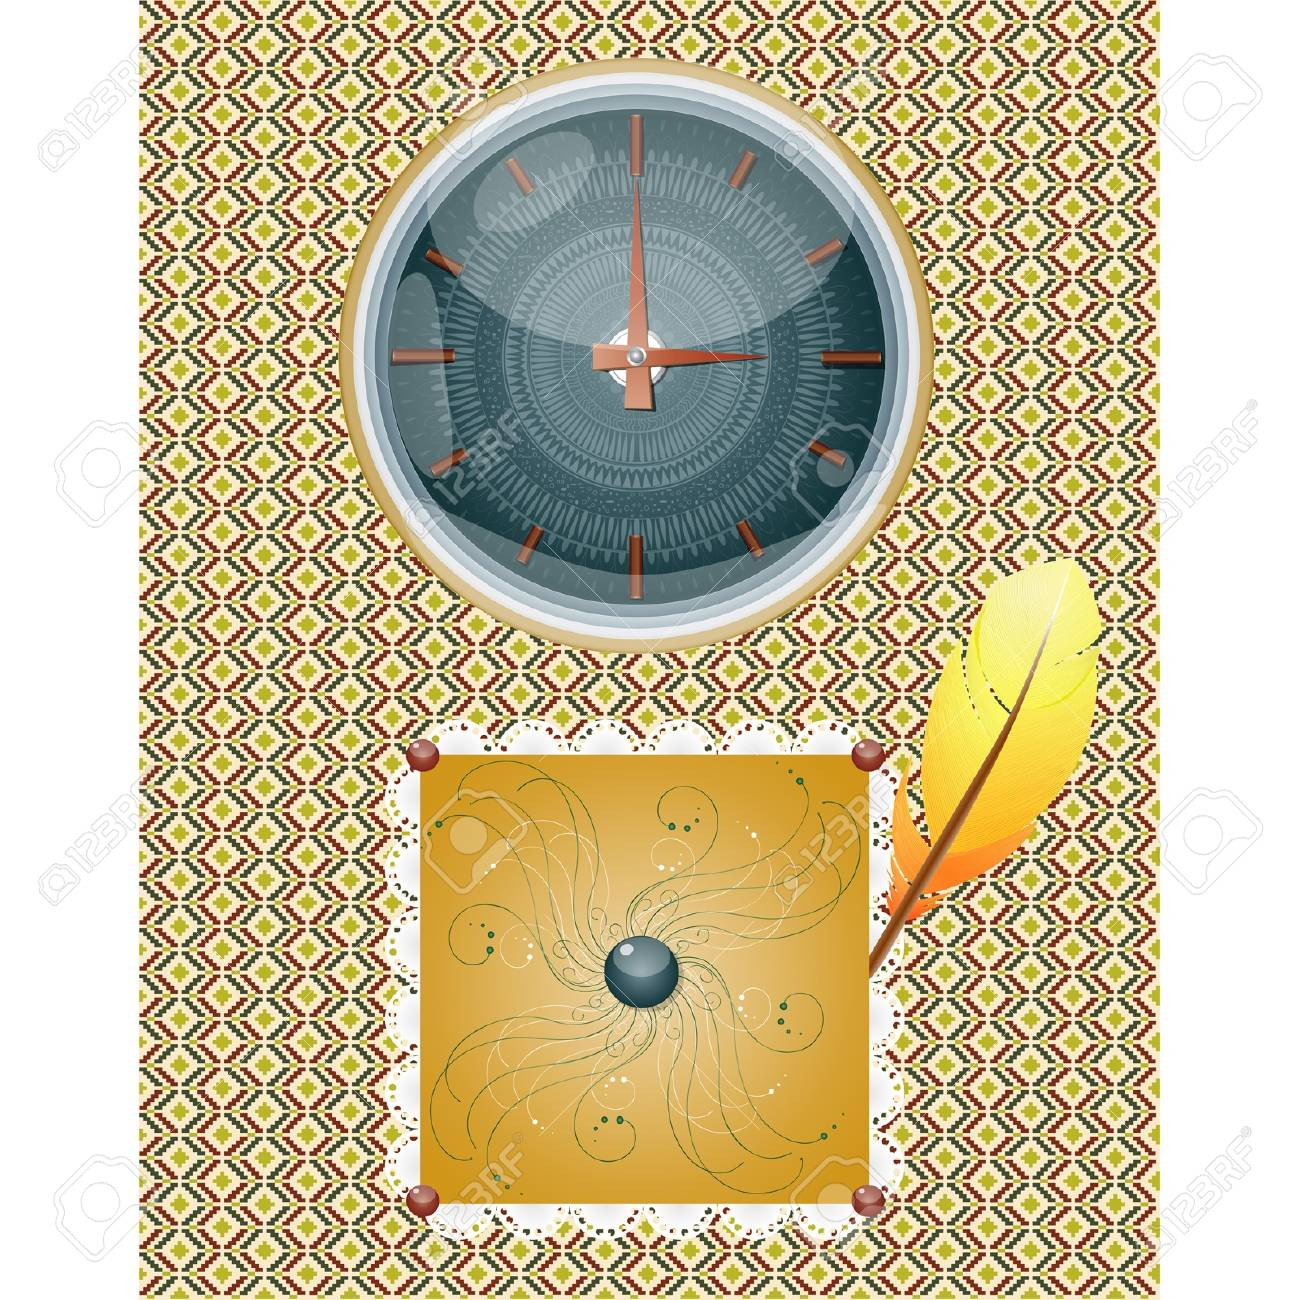 Retro background with clocks and feather. Illustration 10 version Stock Vector - 17805226